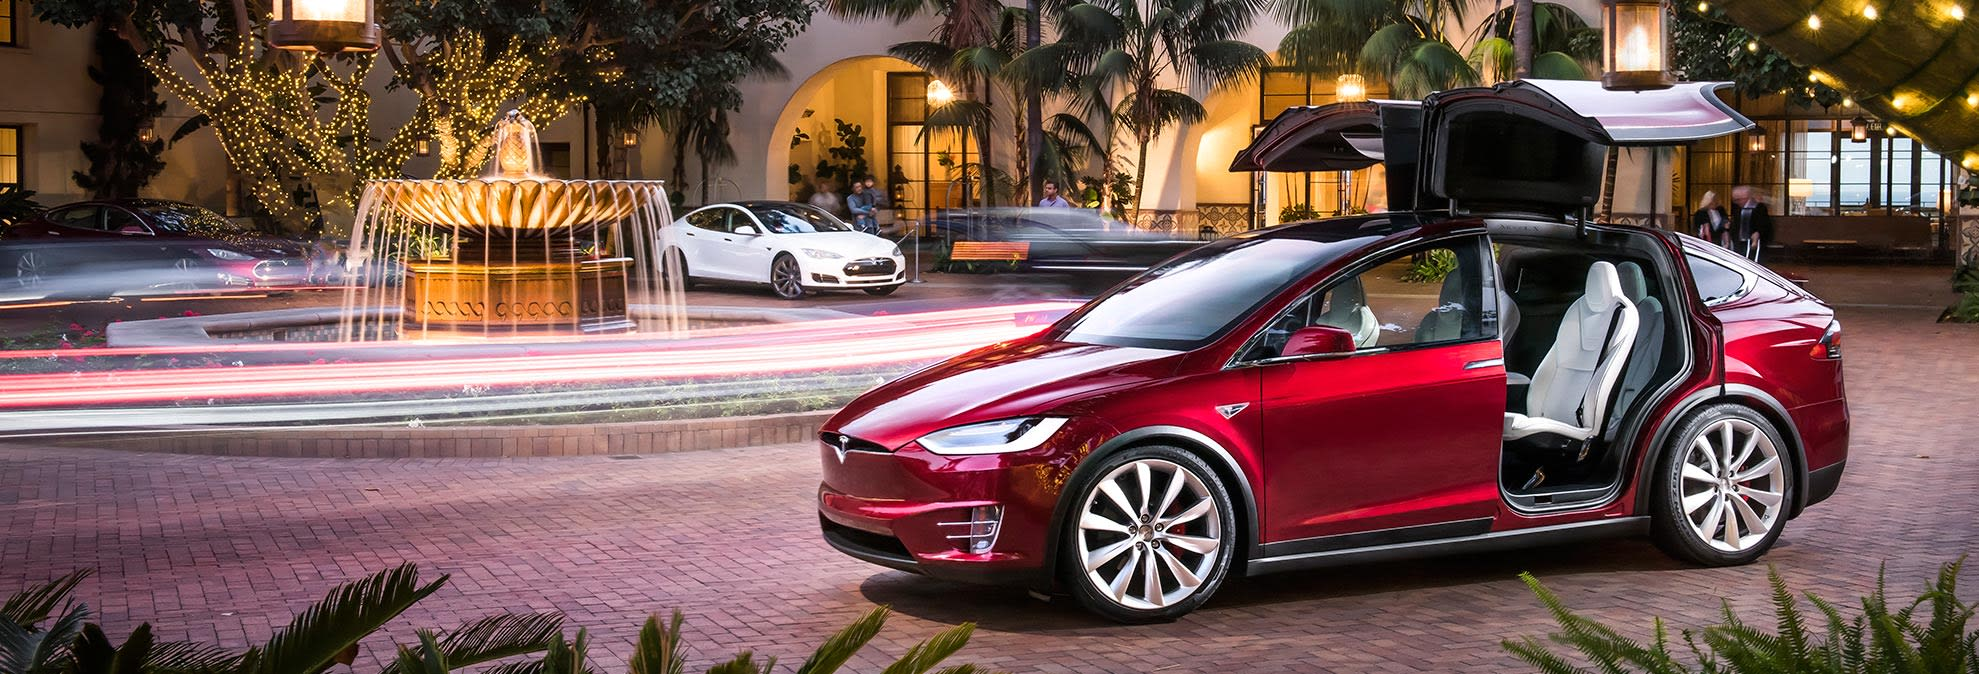 Early Build Tesla Model X Suvs Face Quality Issues